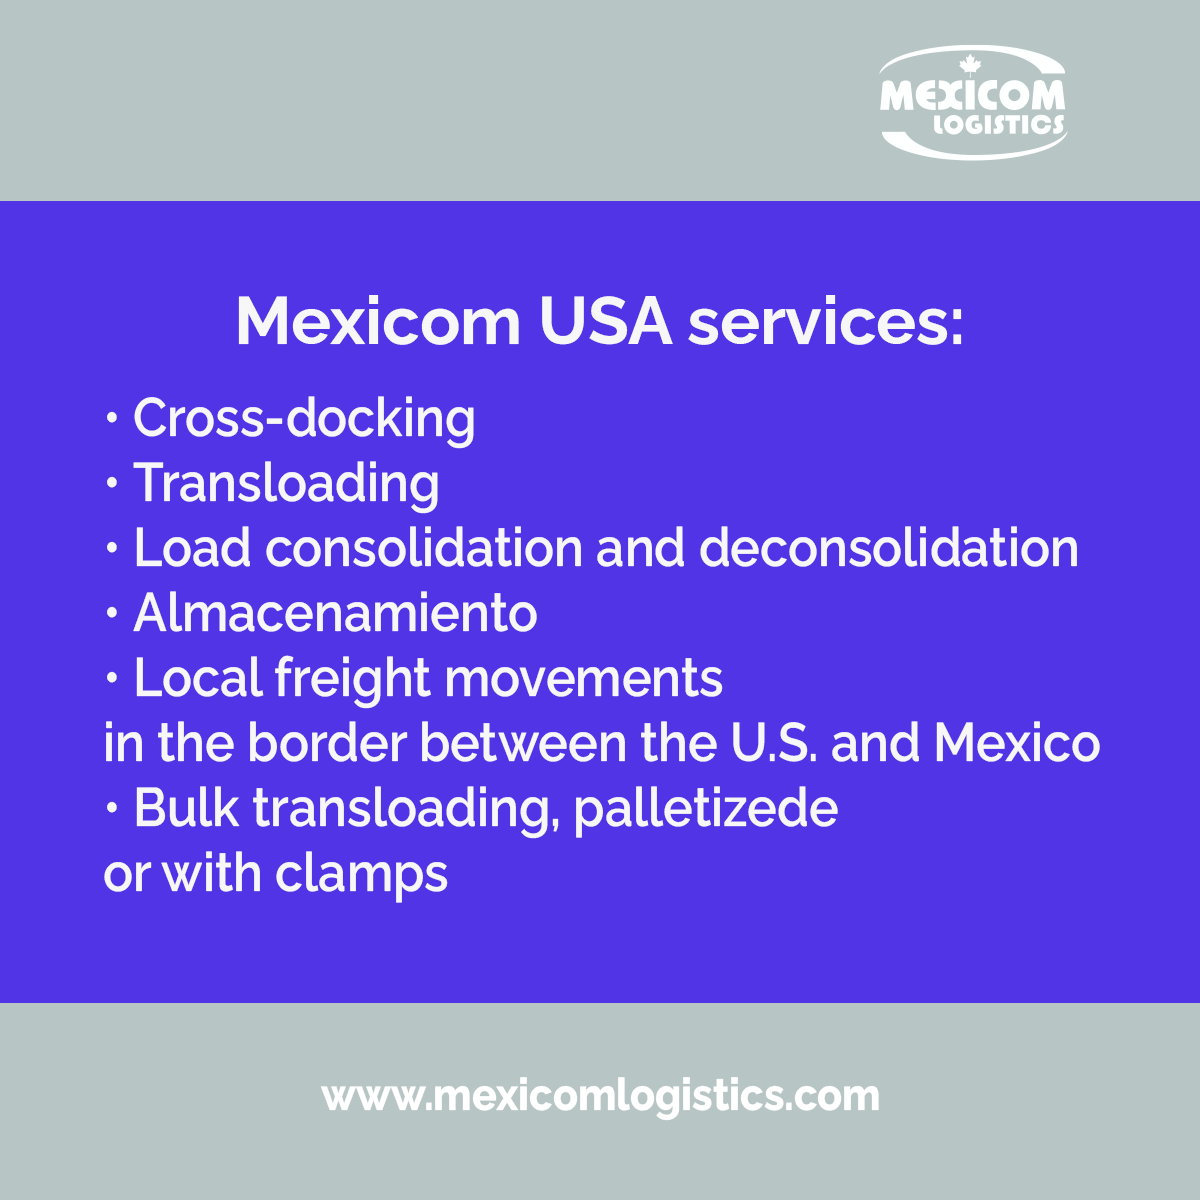 Warehousing and local movements in Laredo with Mexicom USA2